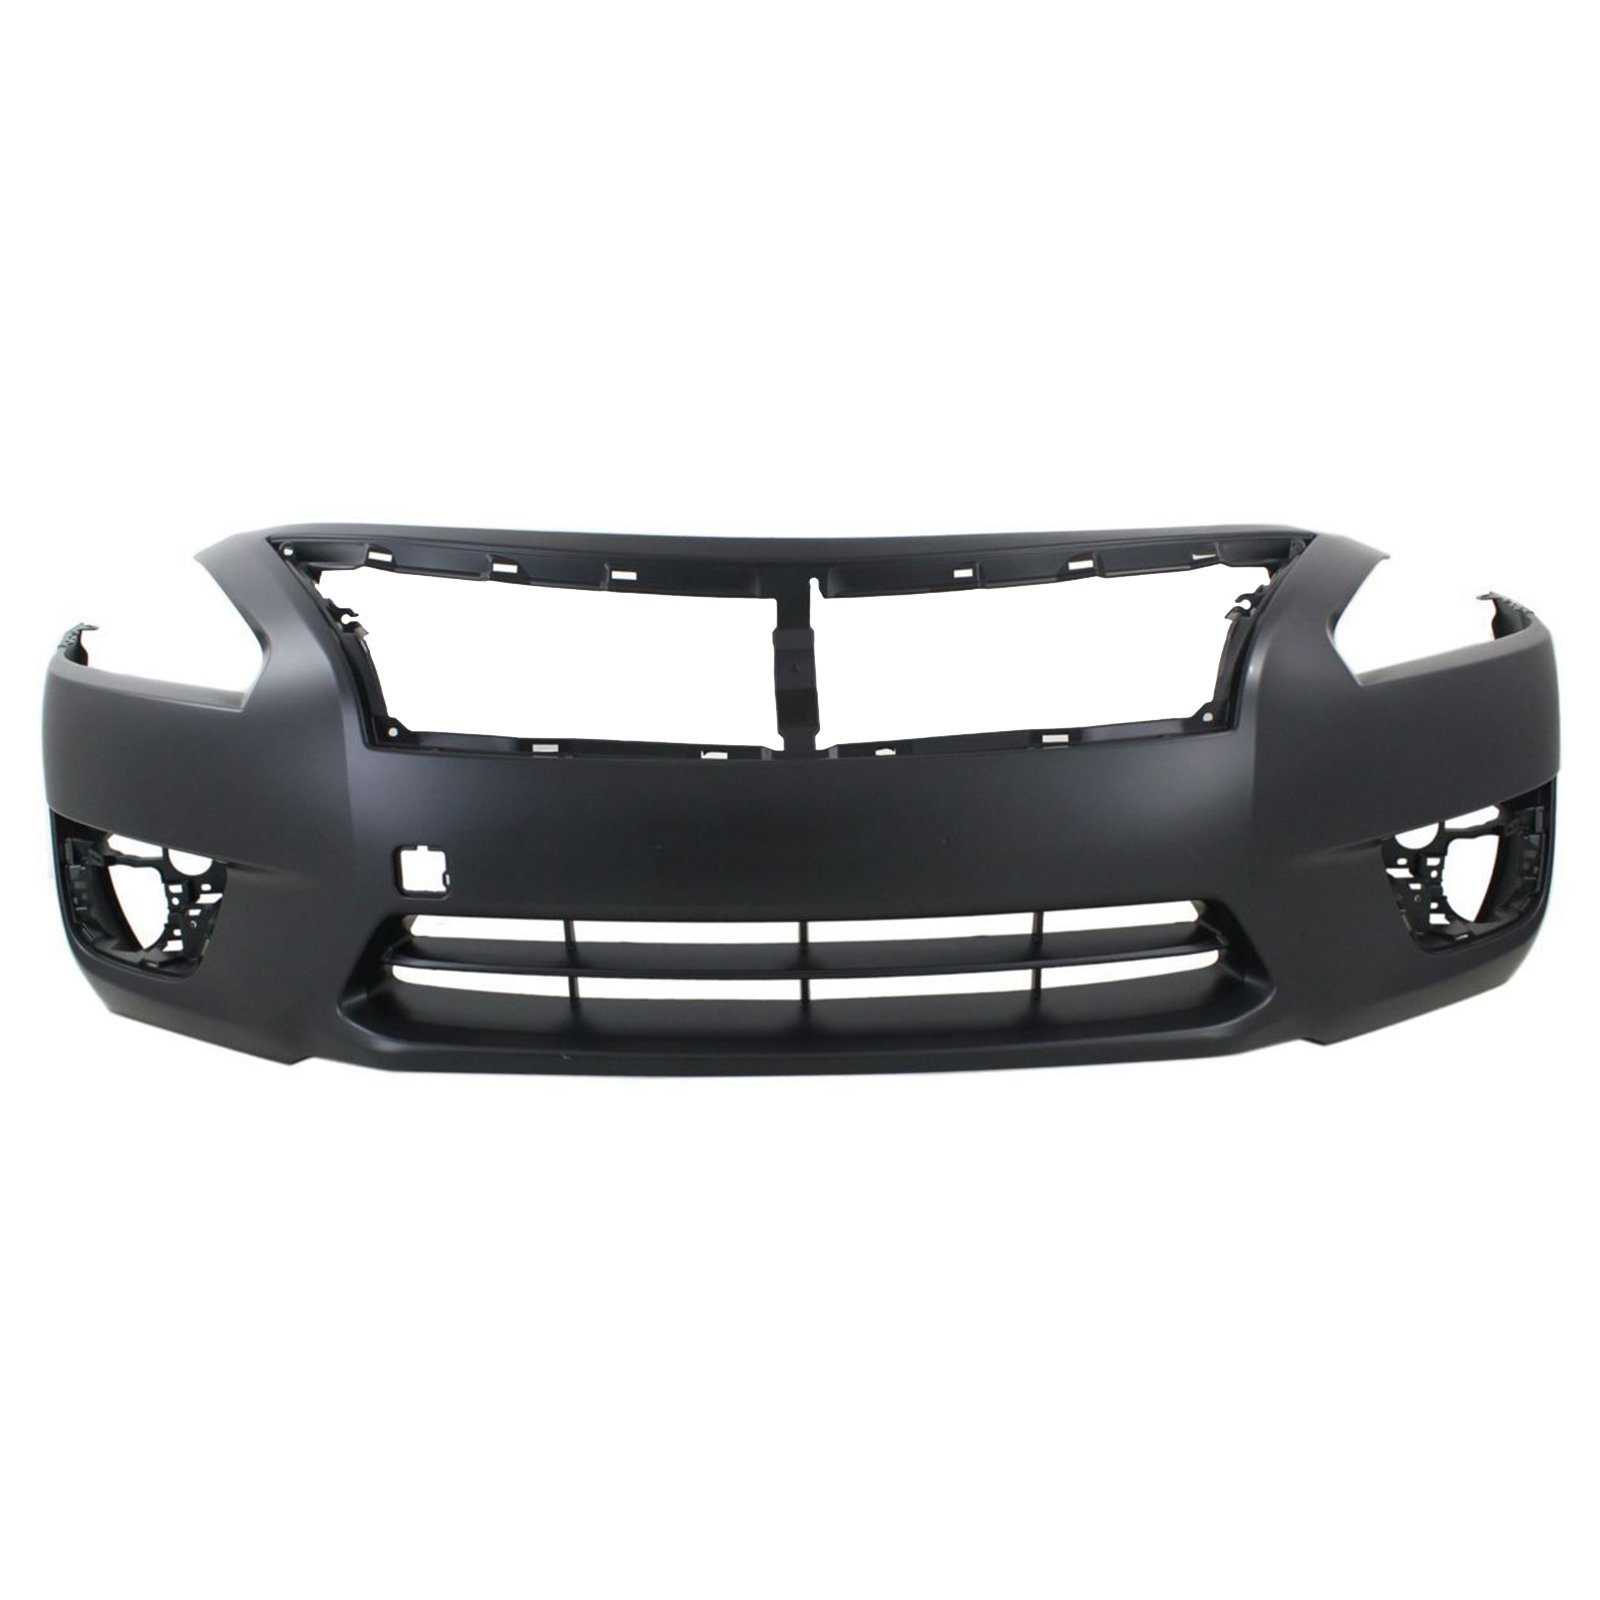 MBI AUTO - Painted to Match, Front Bumper Cover Fascia for 2013 2014 2015 Nissan Altima Sedan 13-15, NI1000285